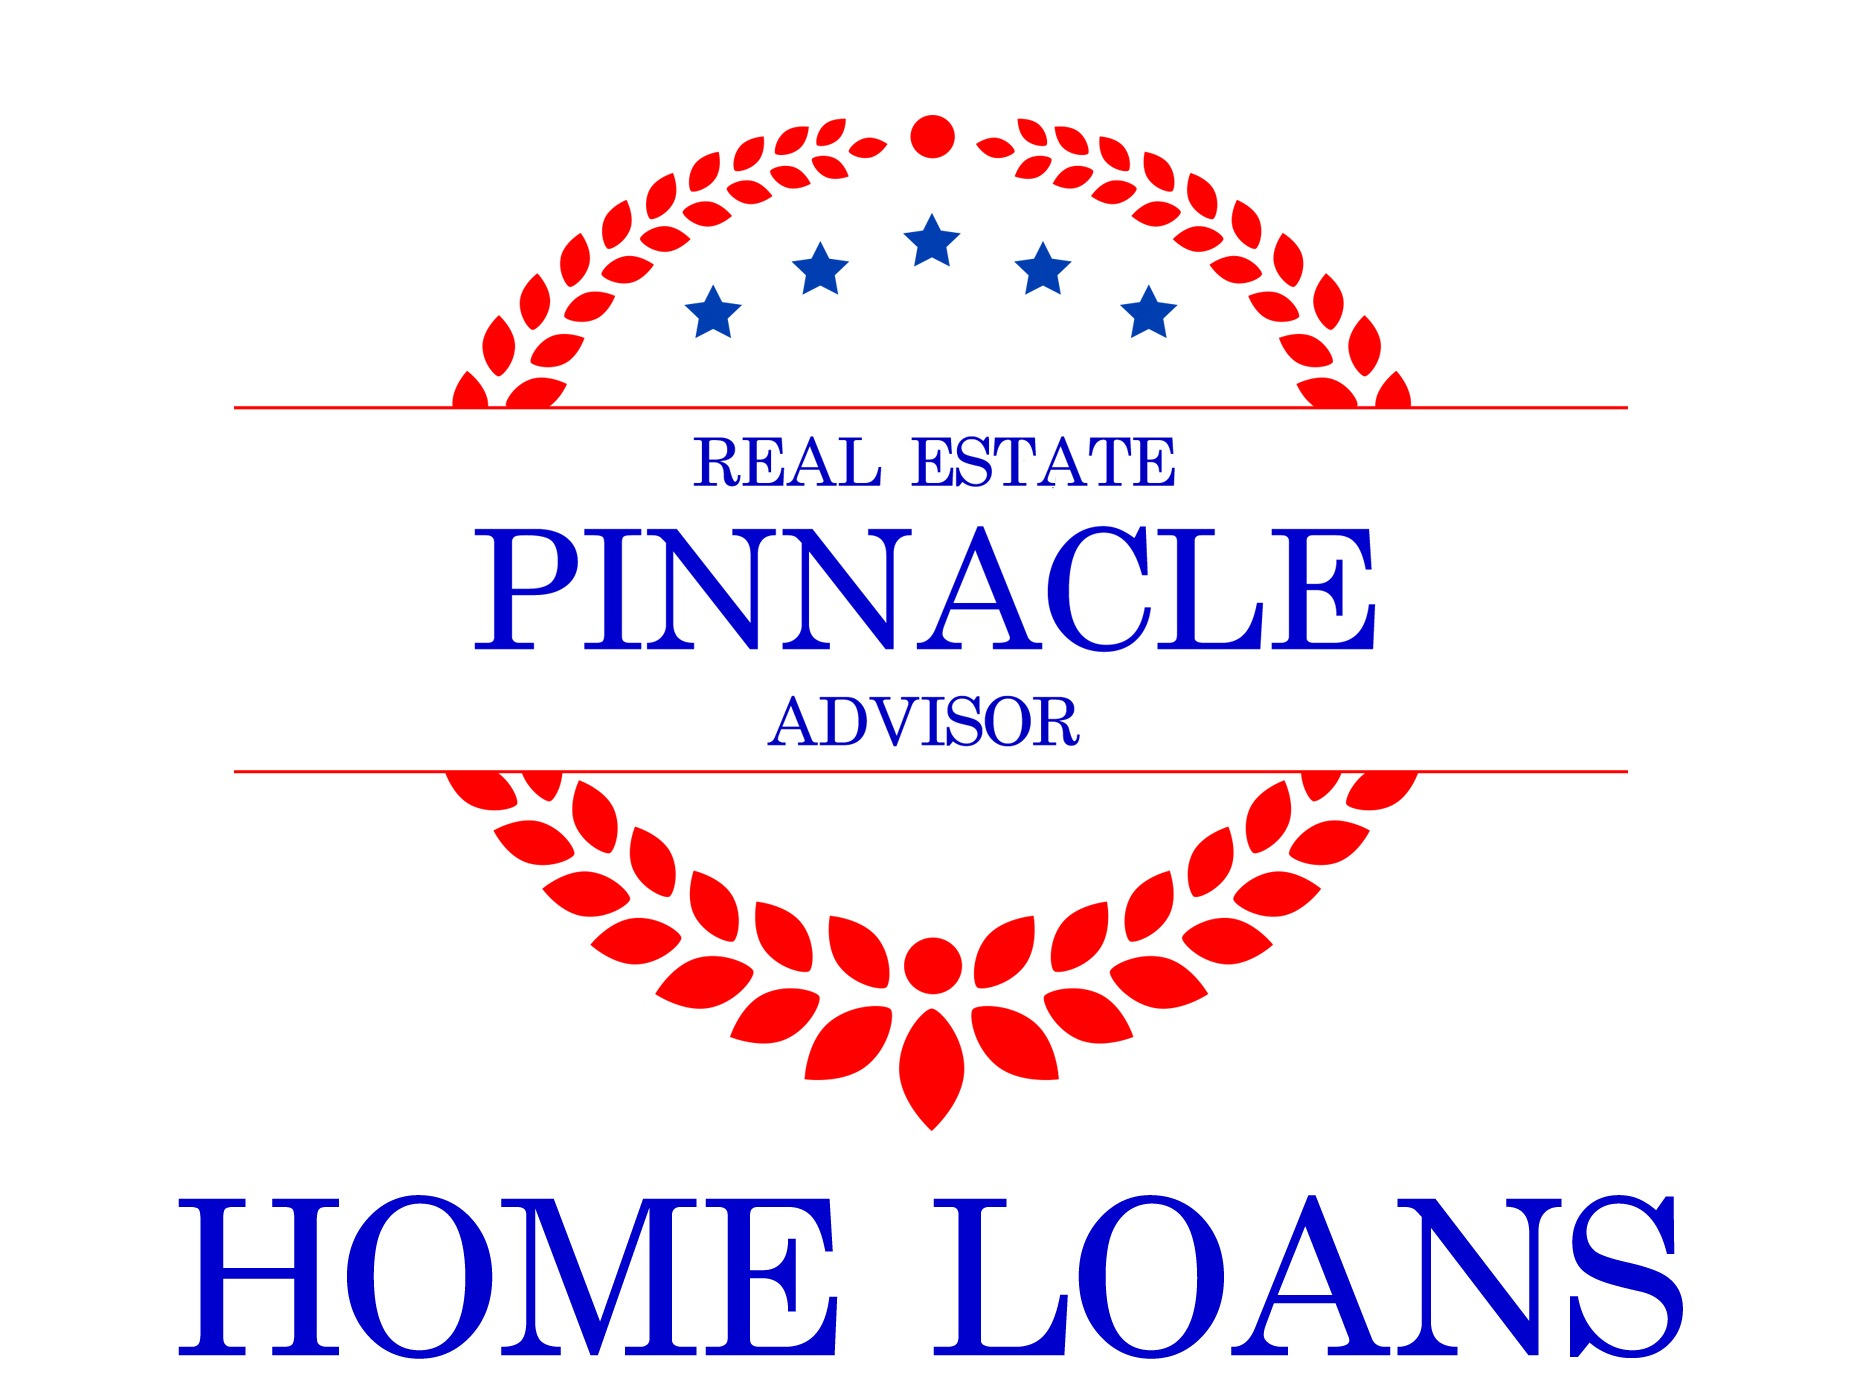 pinnacle HOME LOANS BEST